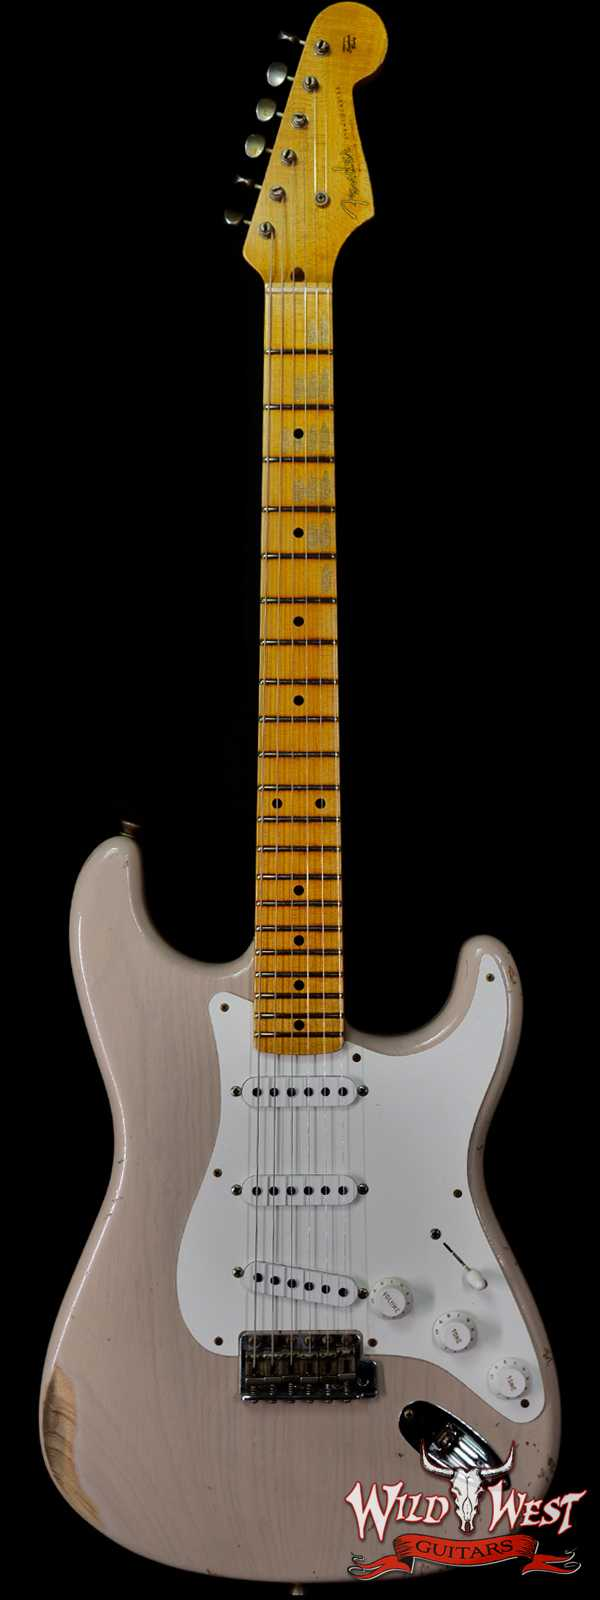 Fender Custom Shop 55' Stratocaster Relic Quatersawn Maple Neck Hand-wound Pickups Dirty White Blonde